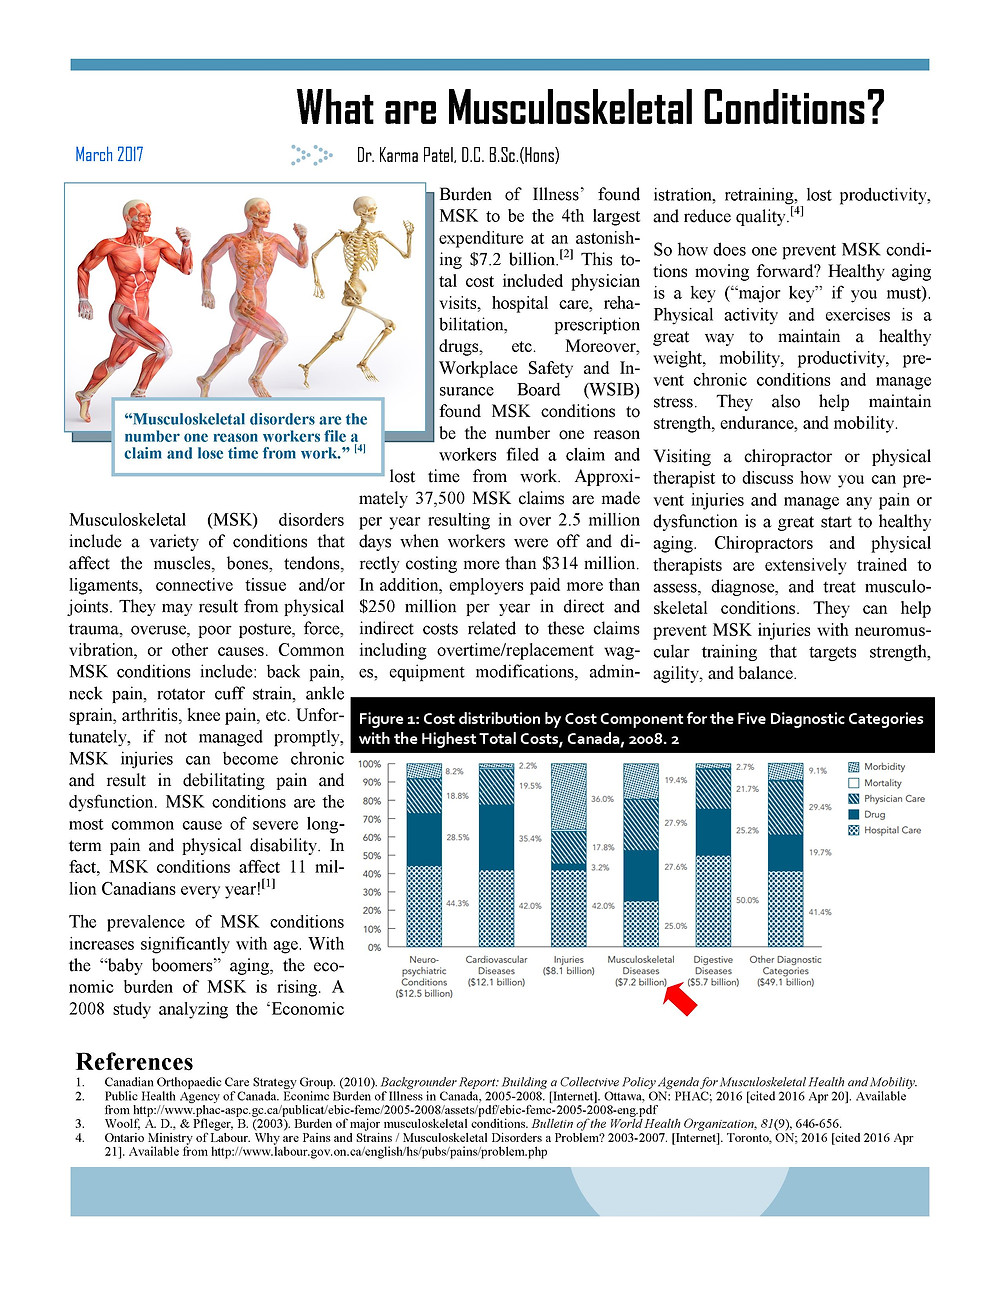 What are musculoskeletal conditions?